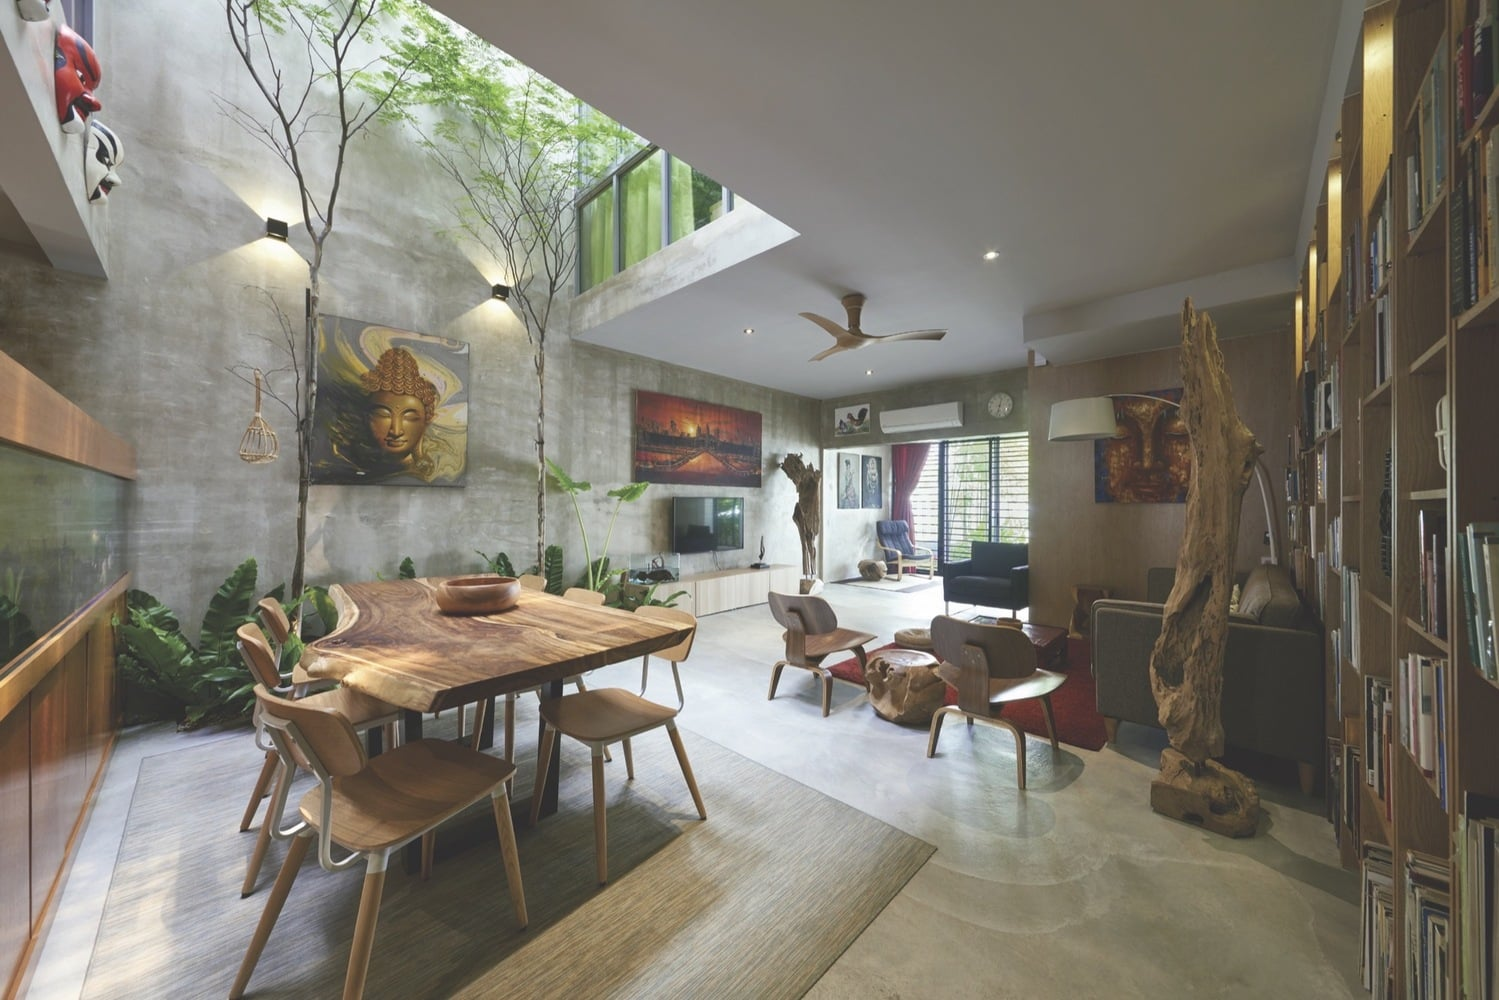 An average terrace house envisioned in an not so average